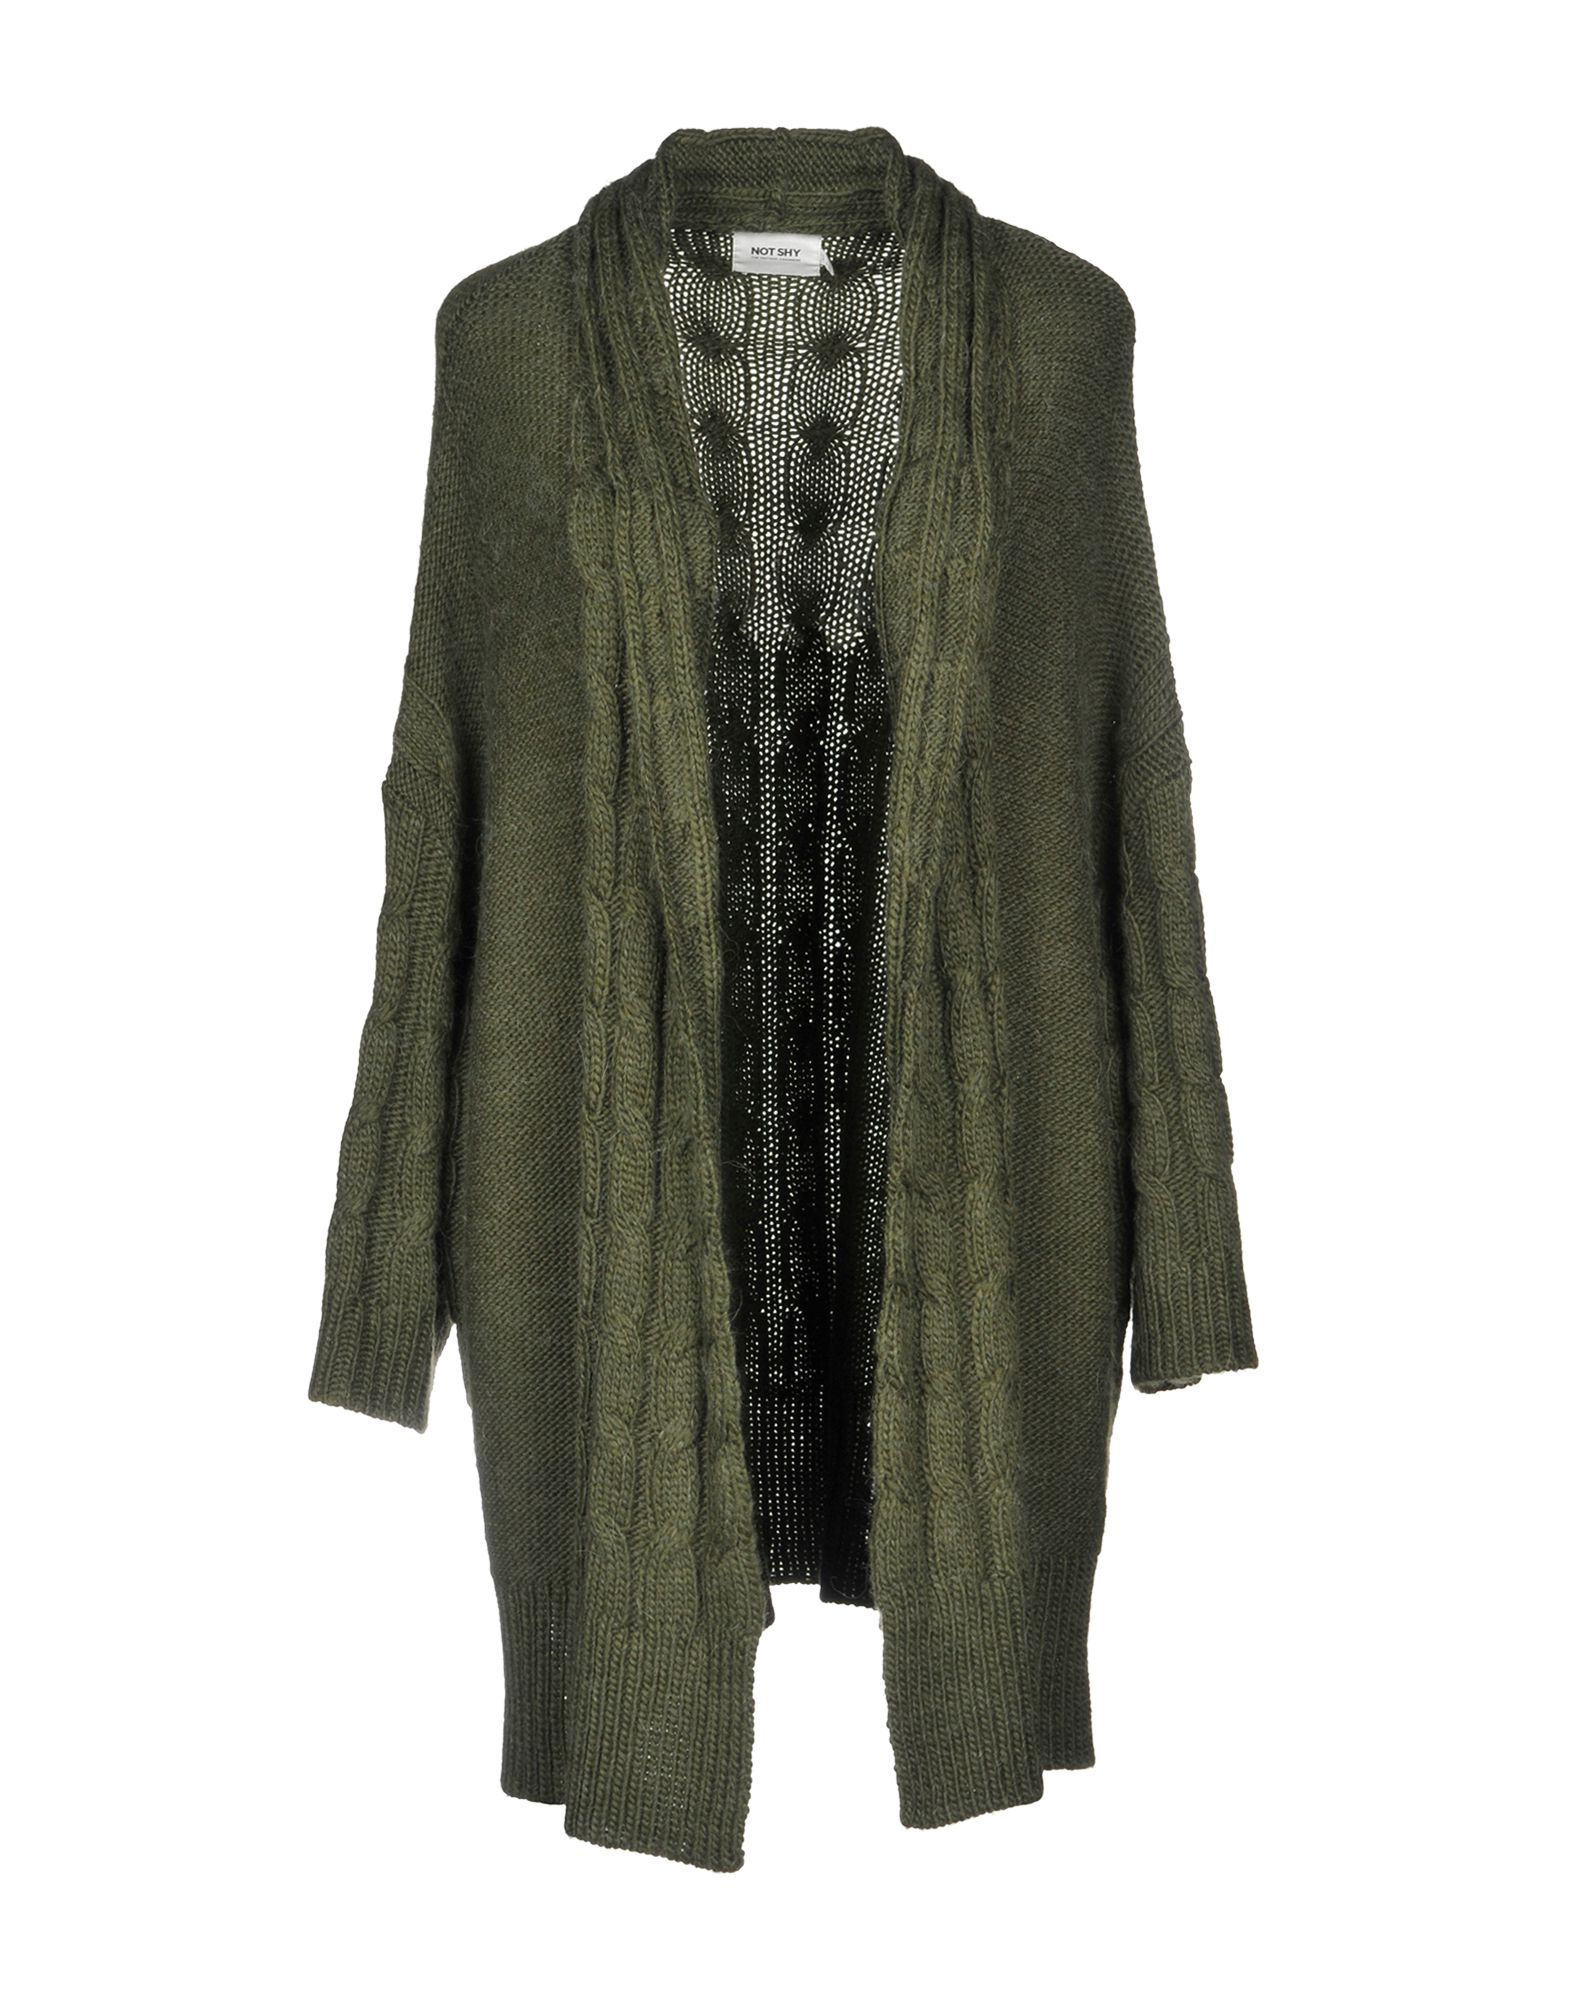 NOT SHY Cardigan in Military Green